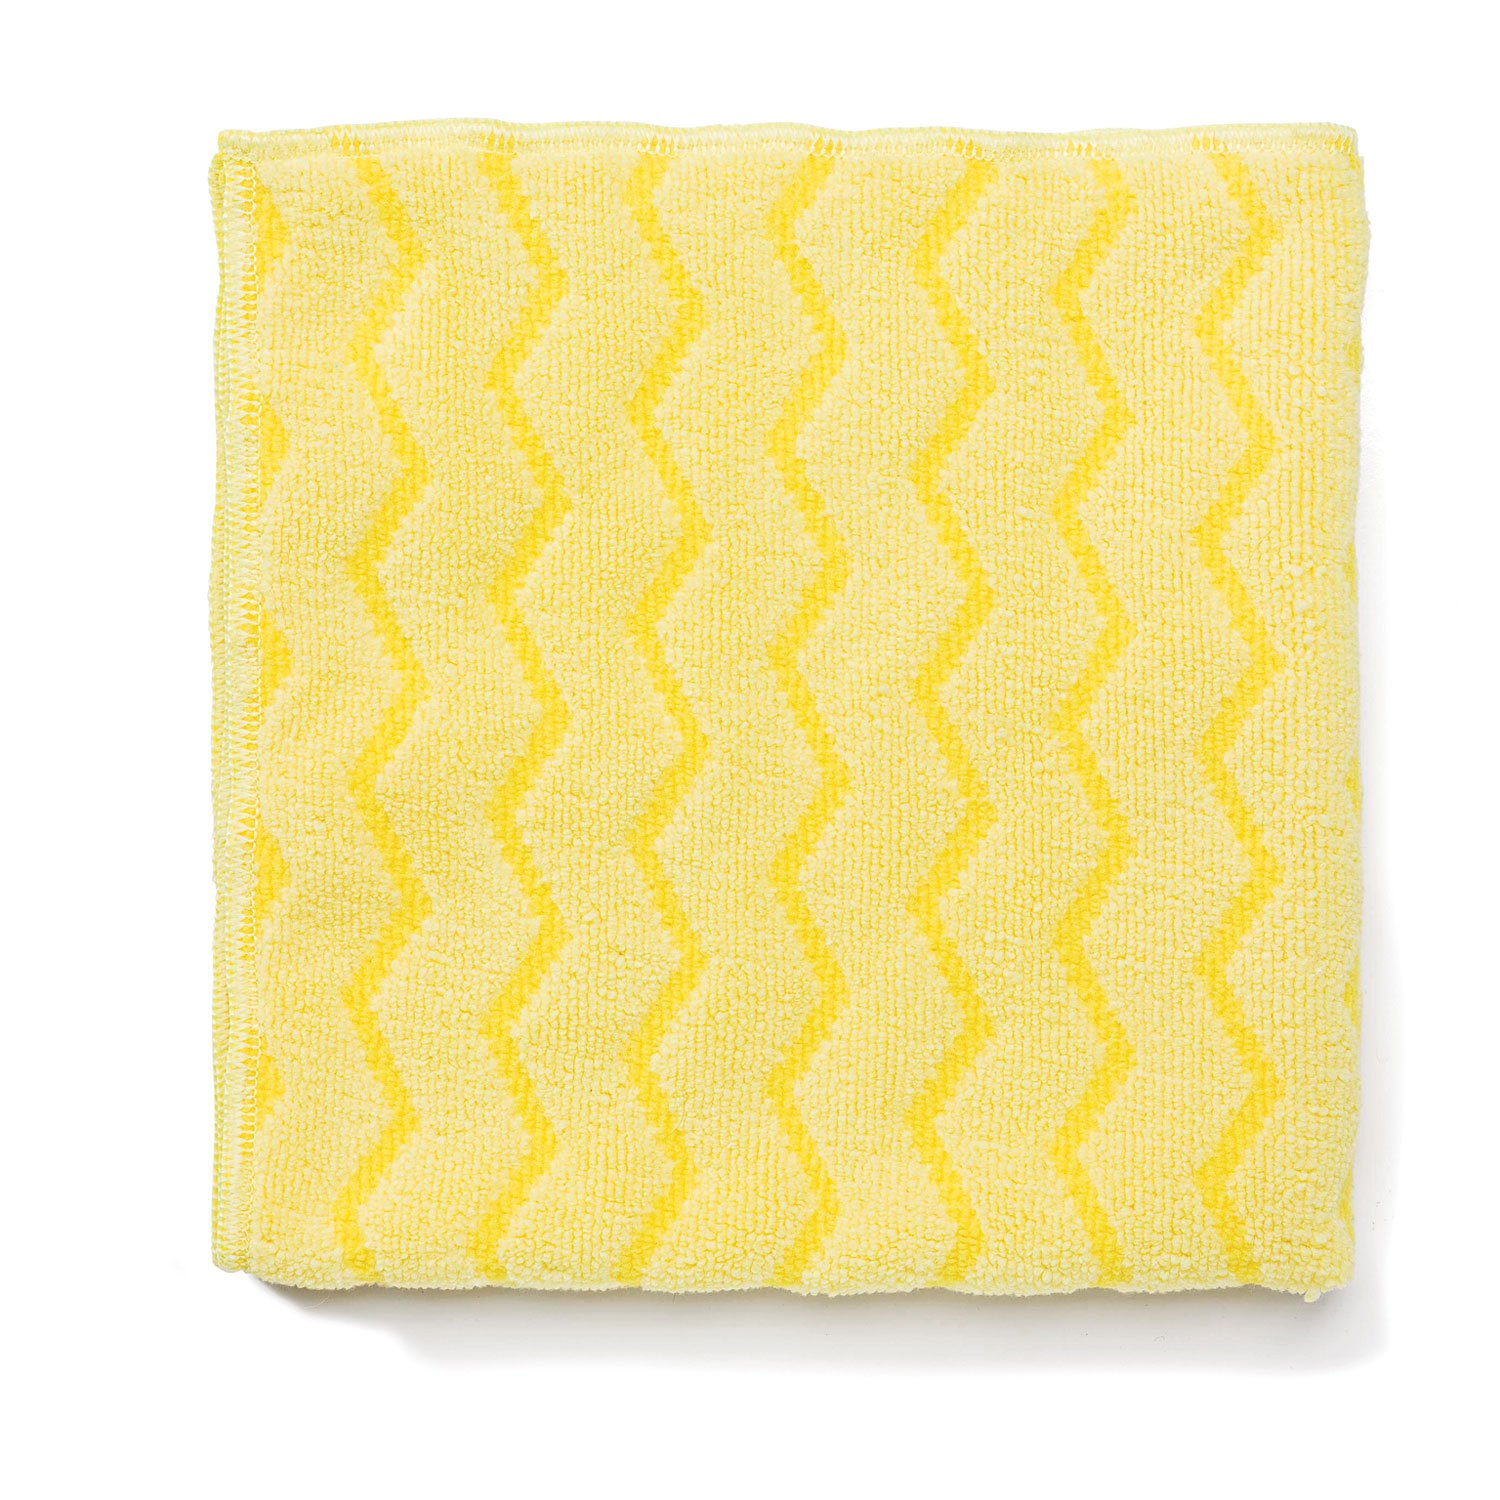 Rubbermaid Commercial Q610 Reusable Cleaning Cloths Microfiber 16 x 16 Yellow 12/Carton